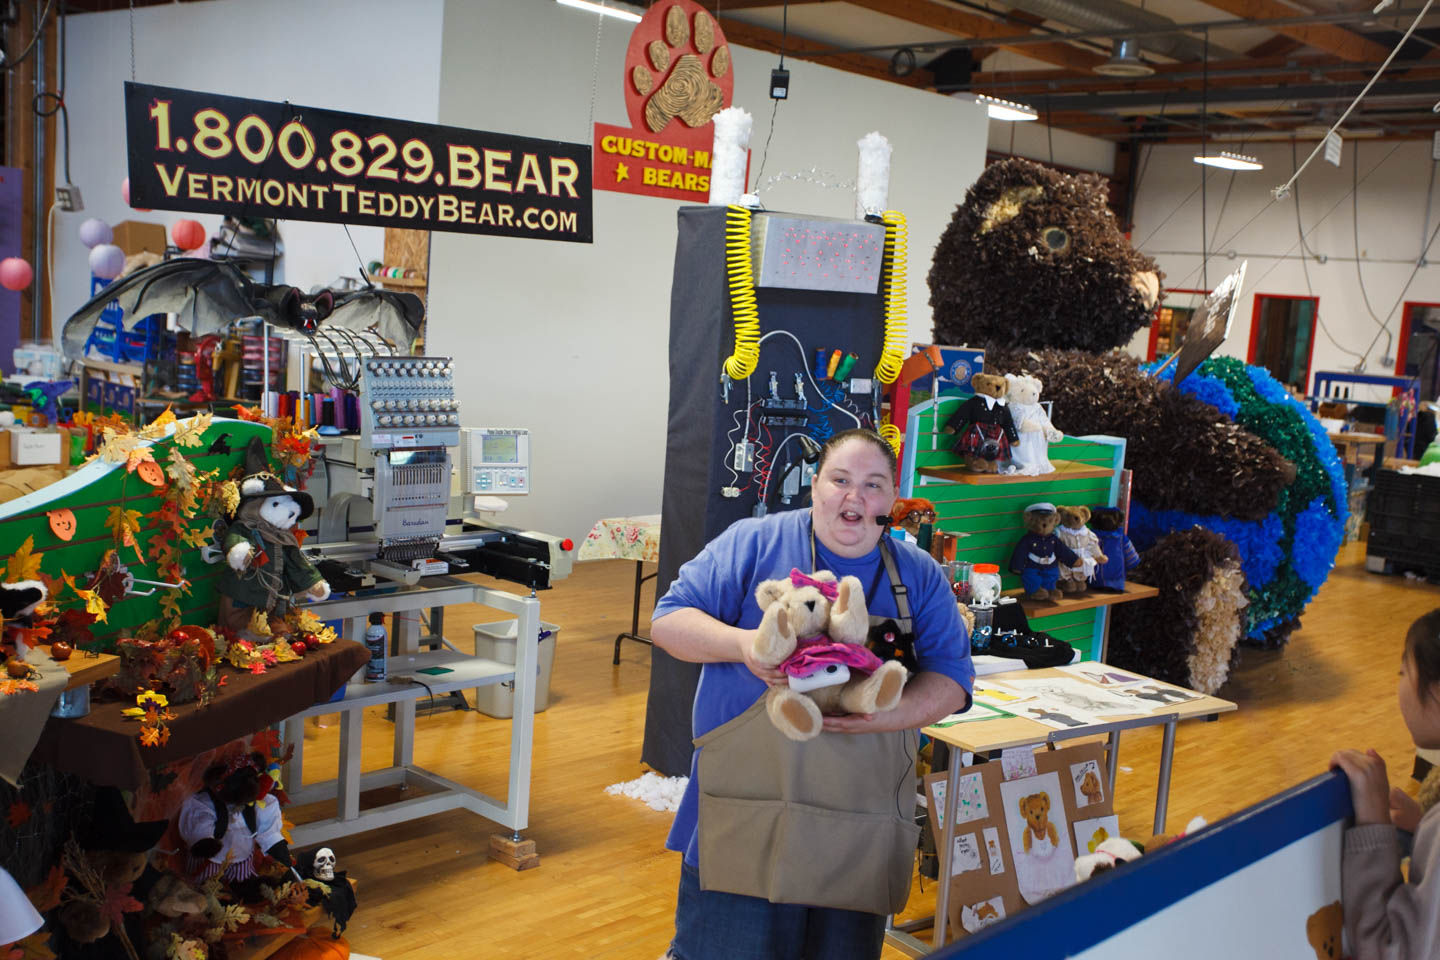 Tour of the Vermont Teddy Bear Factory